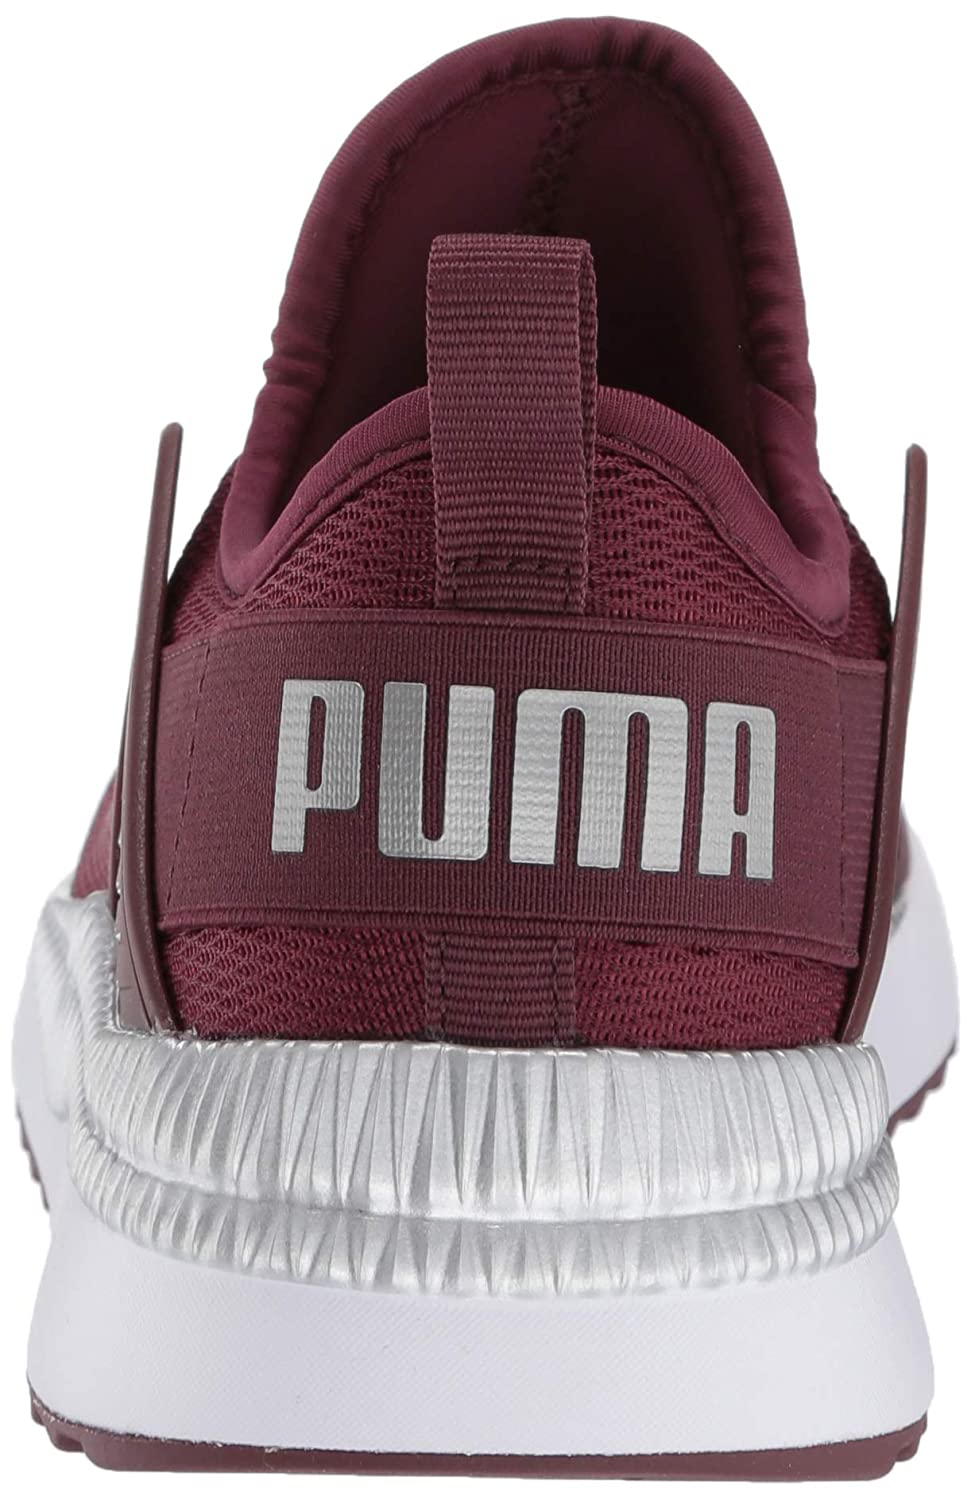 688f406dfe8 Puma Women s s Pacer Next Cage Sneaker  Amazon.co.uk  Shoes   Bags